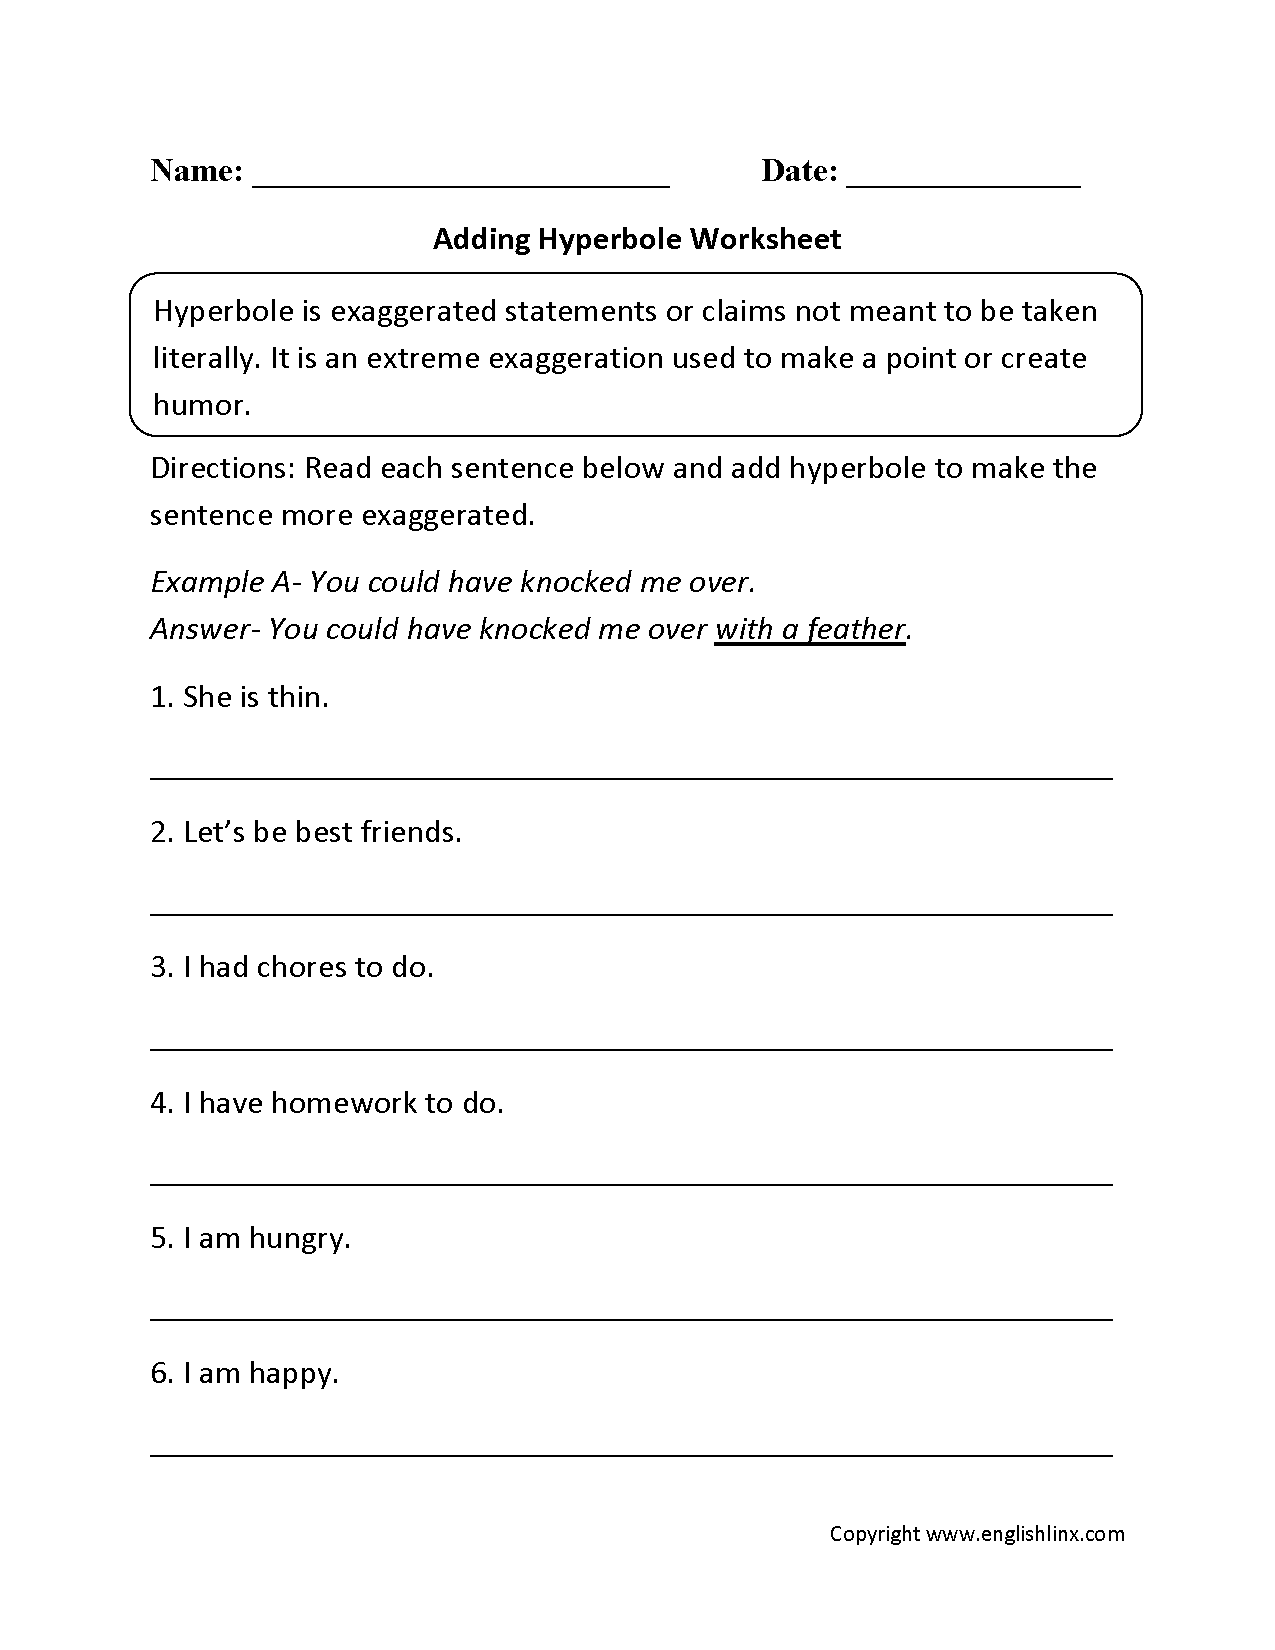 Worksheet Hyperbole Worksheets figurative language worksheets hyperbole adding worksheet